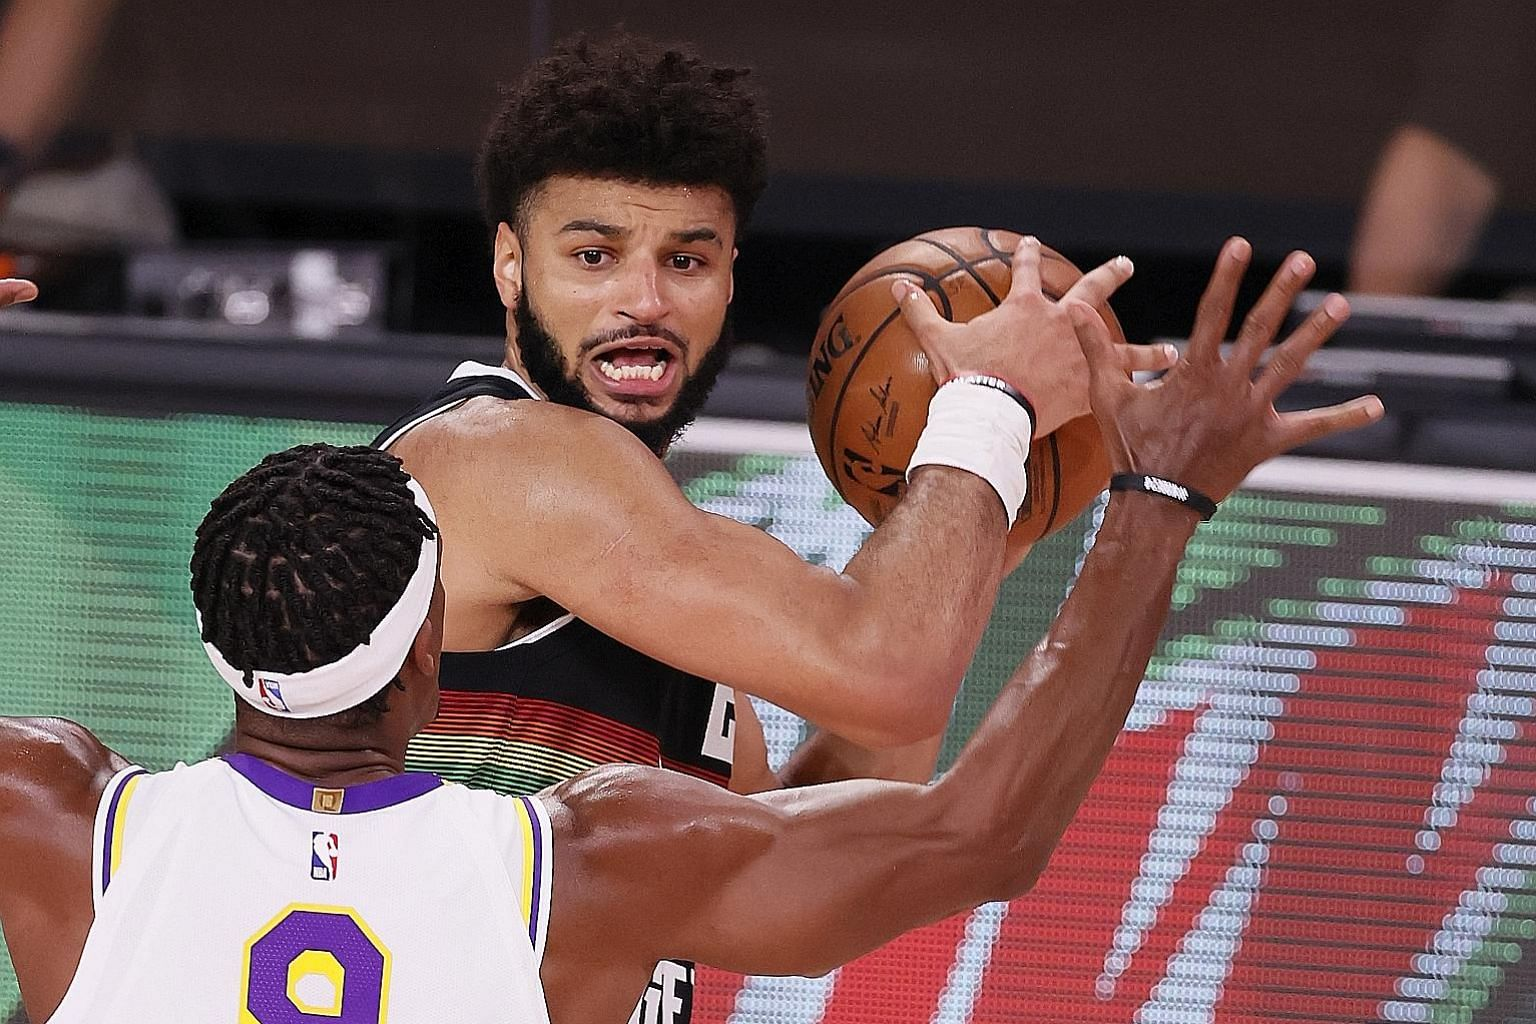 Denver guard Jamal Murray looking to pass around LA Lakers guard Rajon Rondo in Game 3 of the Western Conference Finals in Kissimmee, Florida on Tuesday. He scored 28 points in his side's 114-106 win.